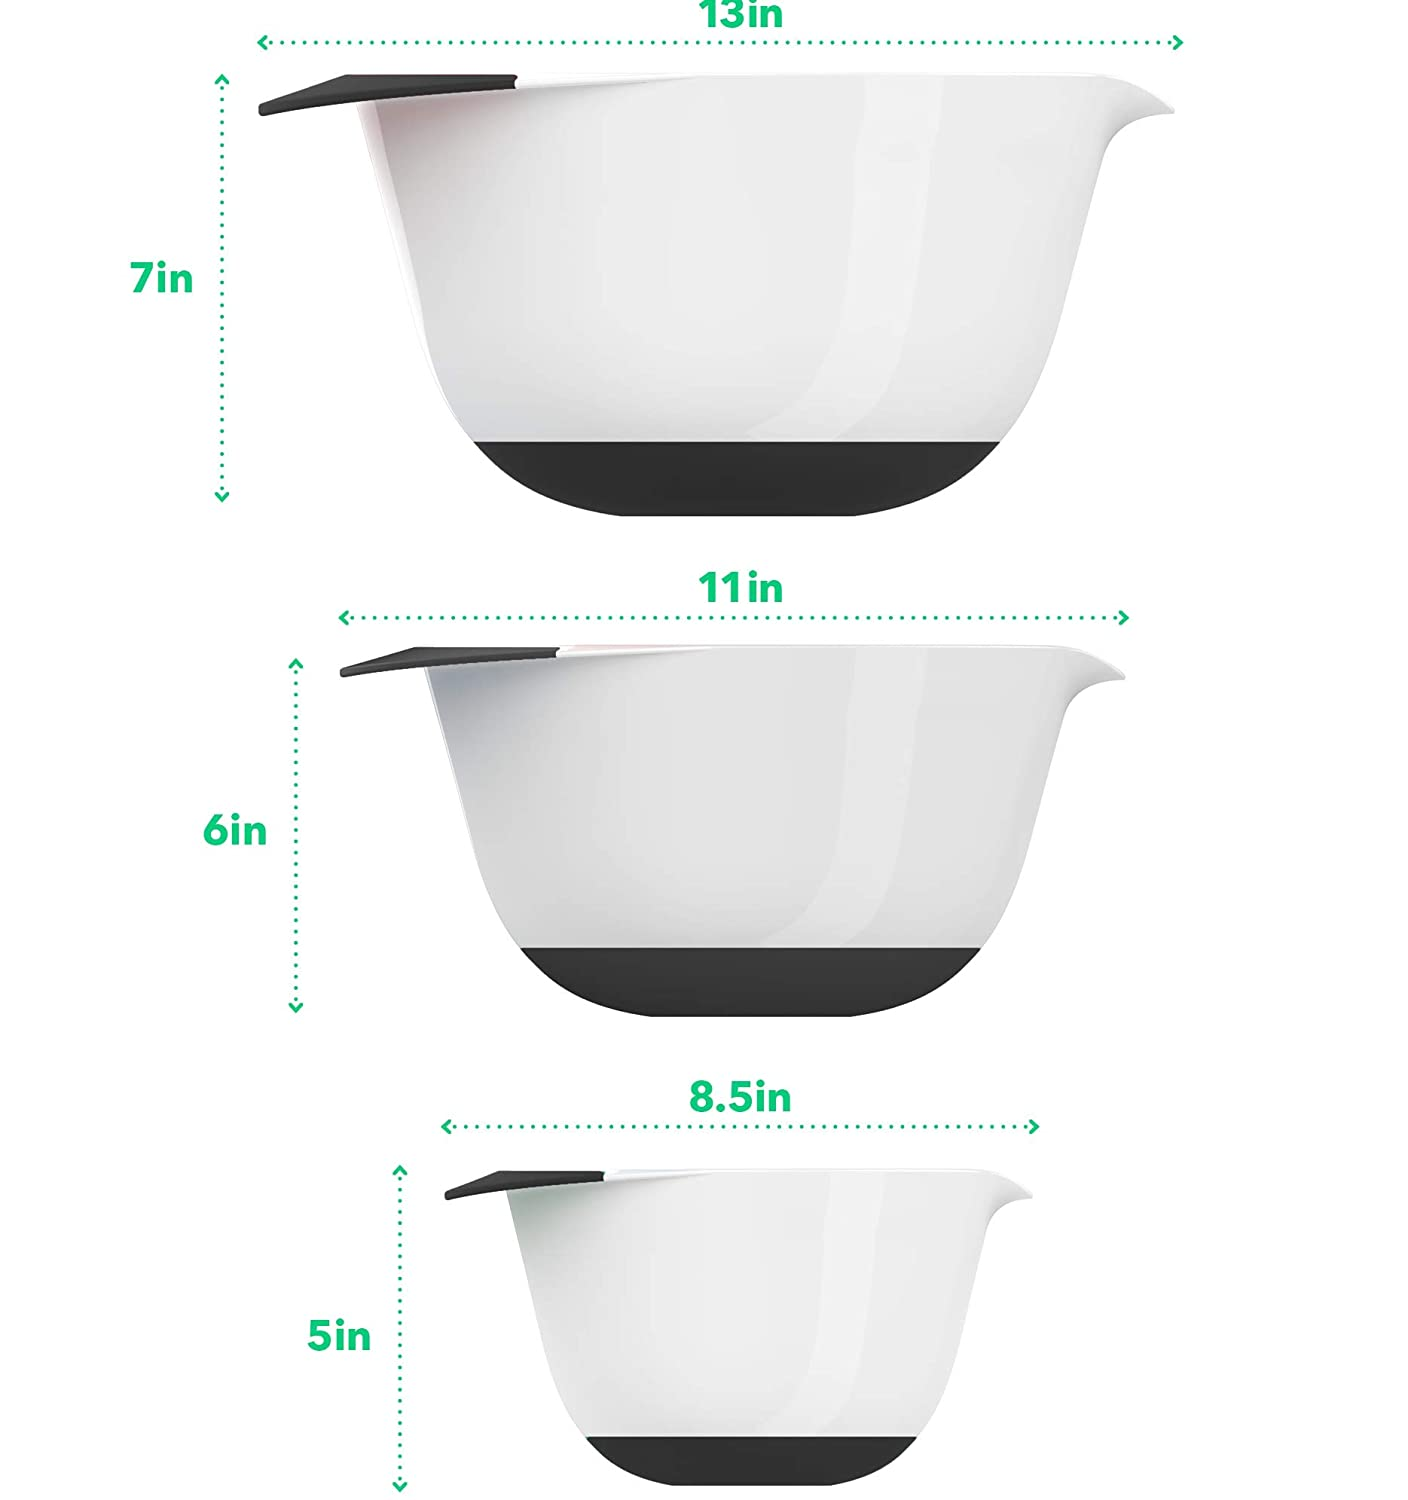 Vremi 3 Piece Plastic Mixing Bowl Set Nesting Mixing Bowls with Rubber Grip Handles Easy Pour Spout and Non Slip Bottom Three Sizes Small Large Capacity for Kitchen Baking Salad White and Black VRM020375N